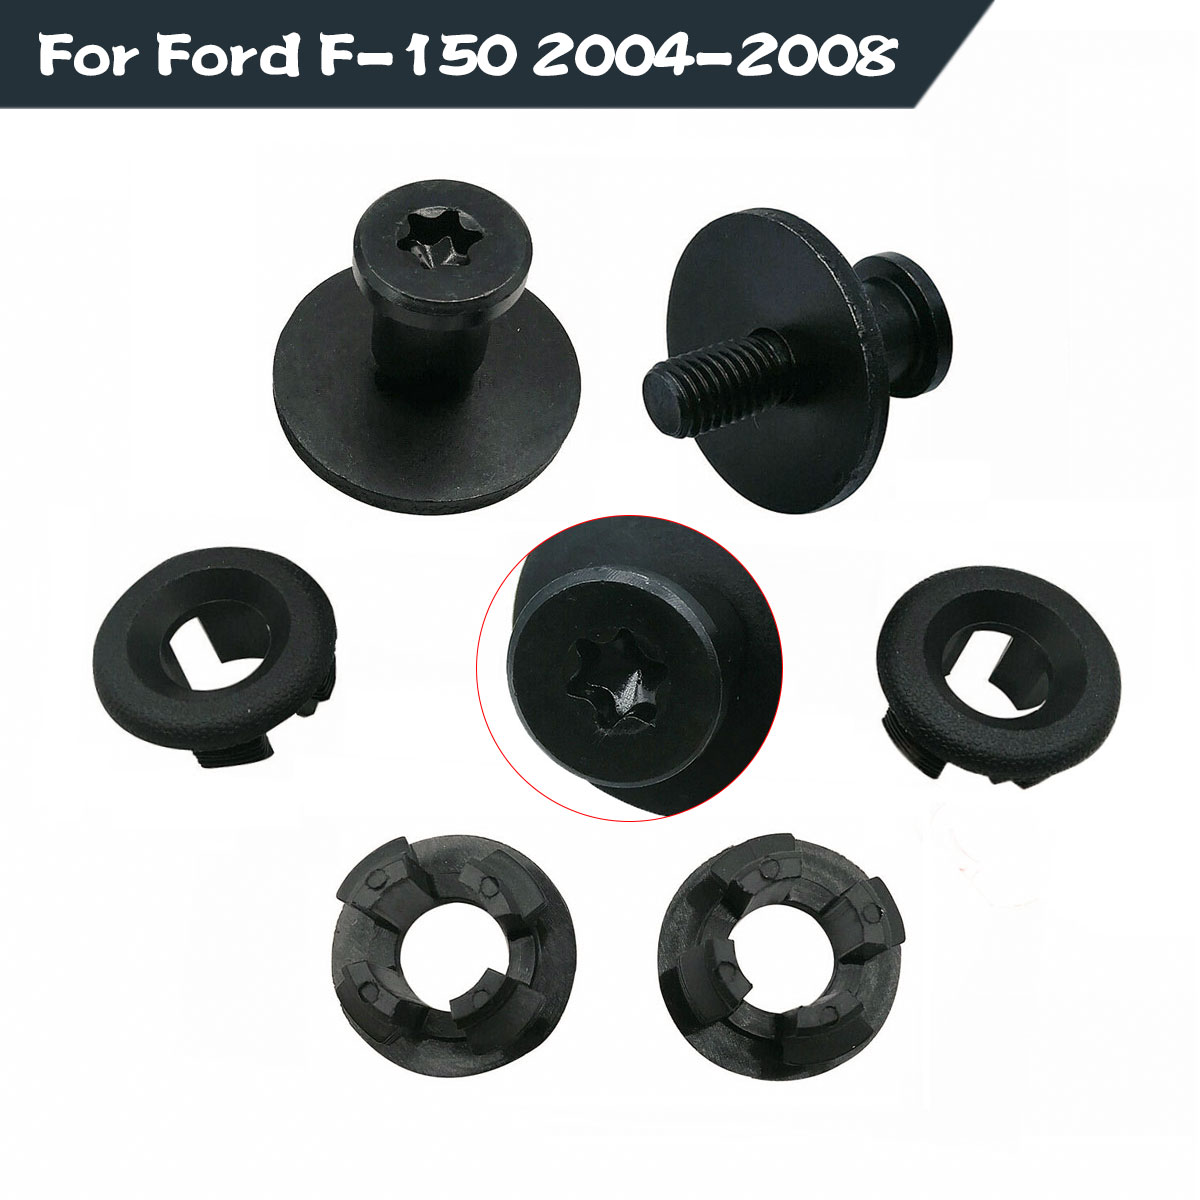 KARPAL Truck Bed Extender Installation Mounting Bolt Nut Hardware Kit Compatible With 2004-2008 Ford F-150